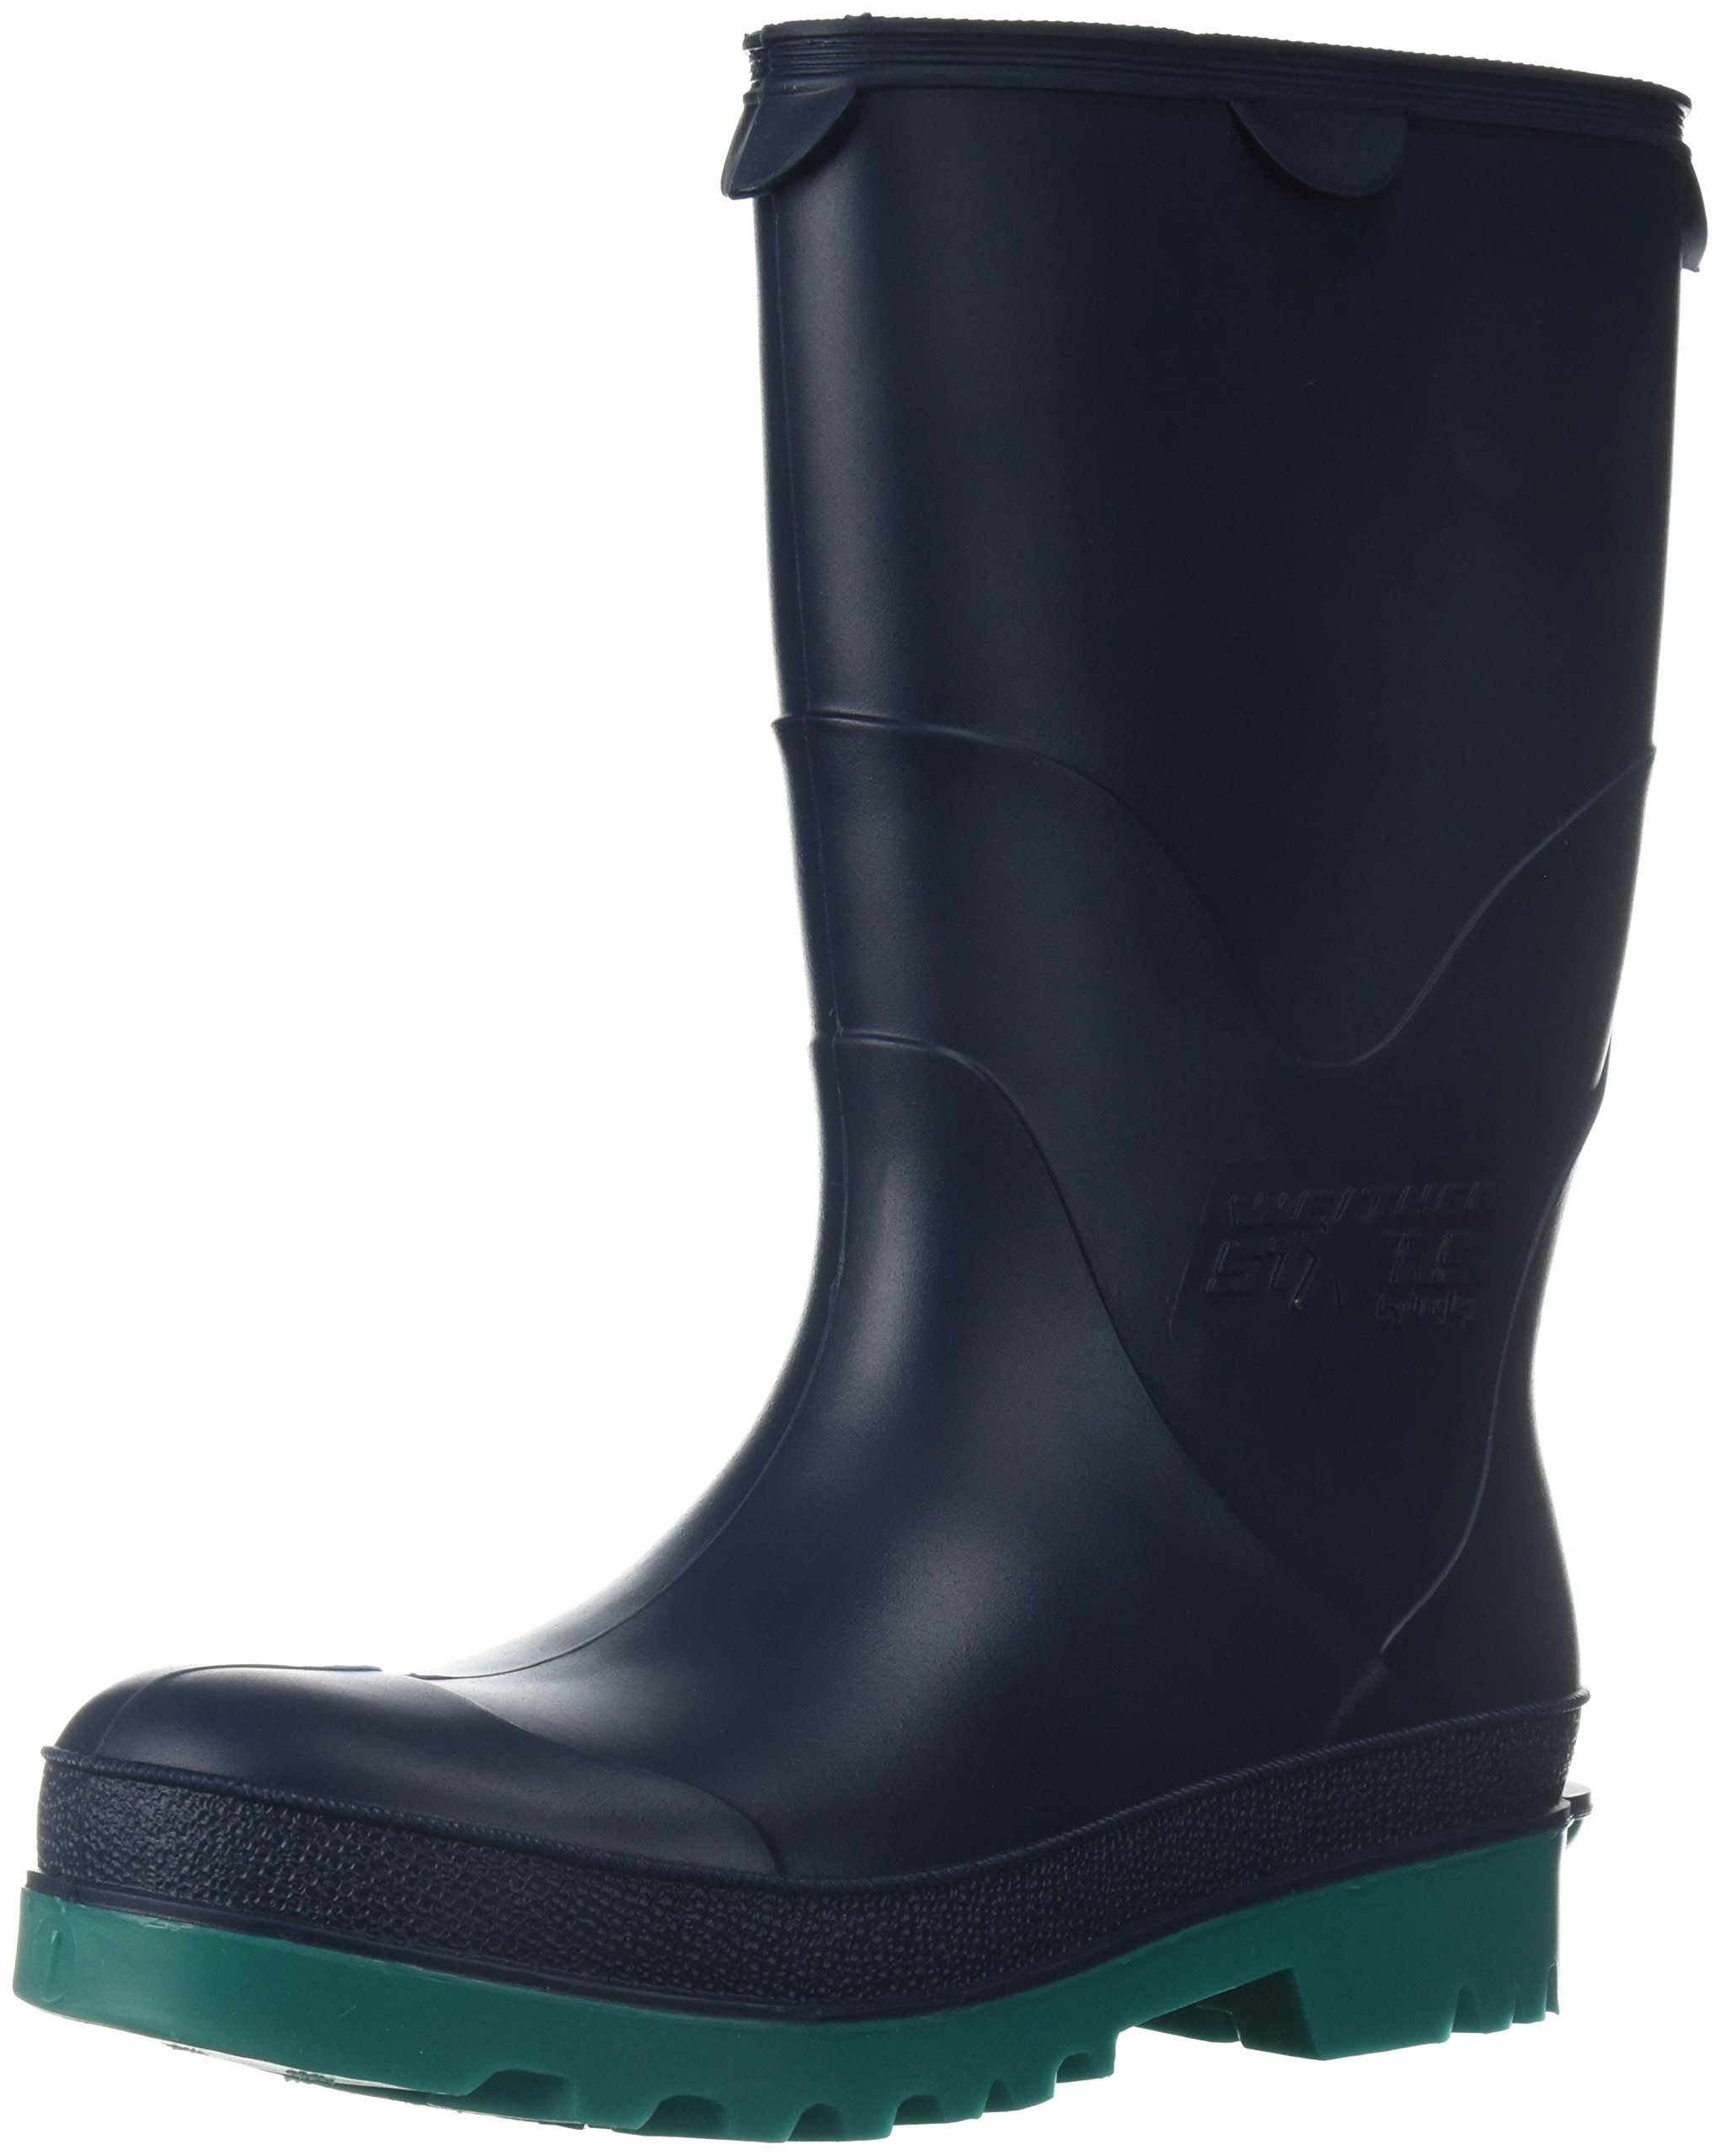 STORMTRACKS 11768.01 Youths' Boot, Size 01, Blue/Green